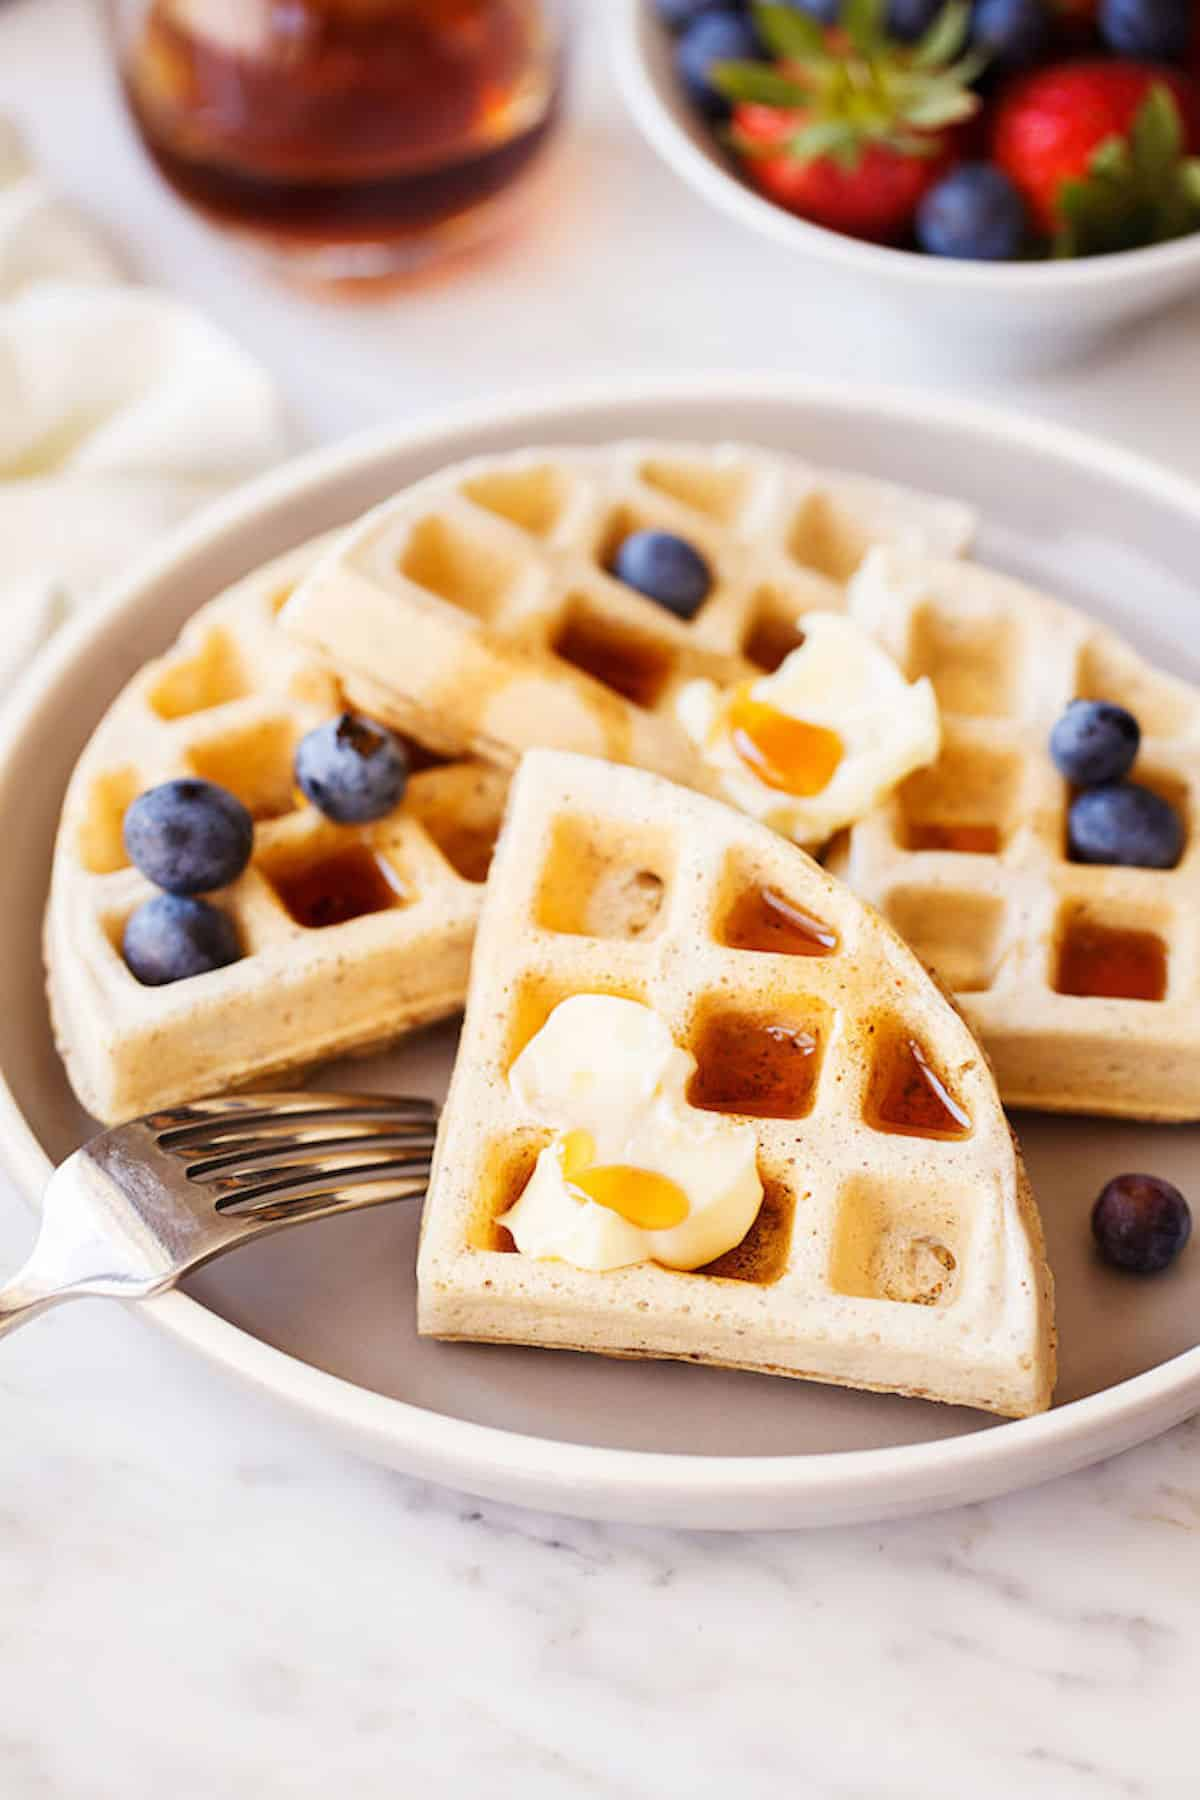 waffles served with vegan butter and blueberries